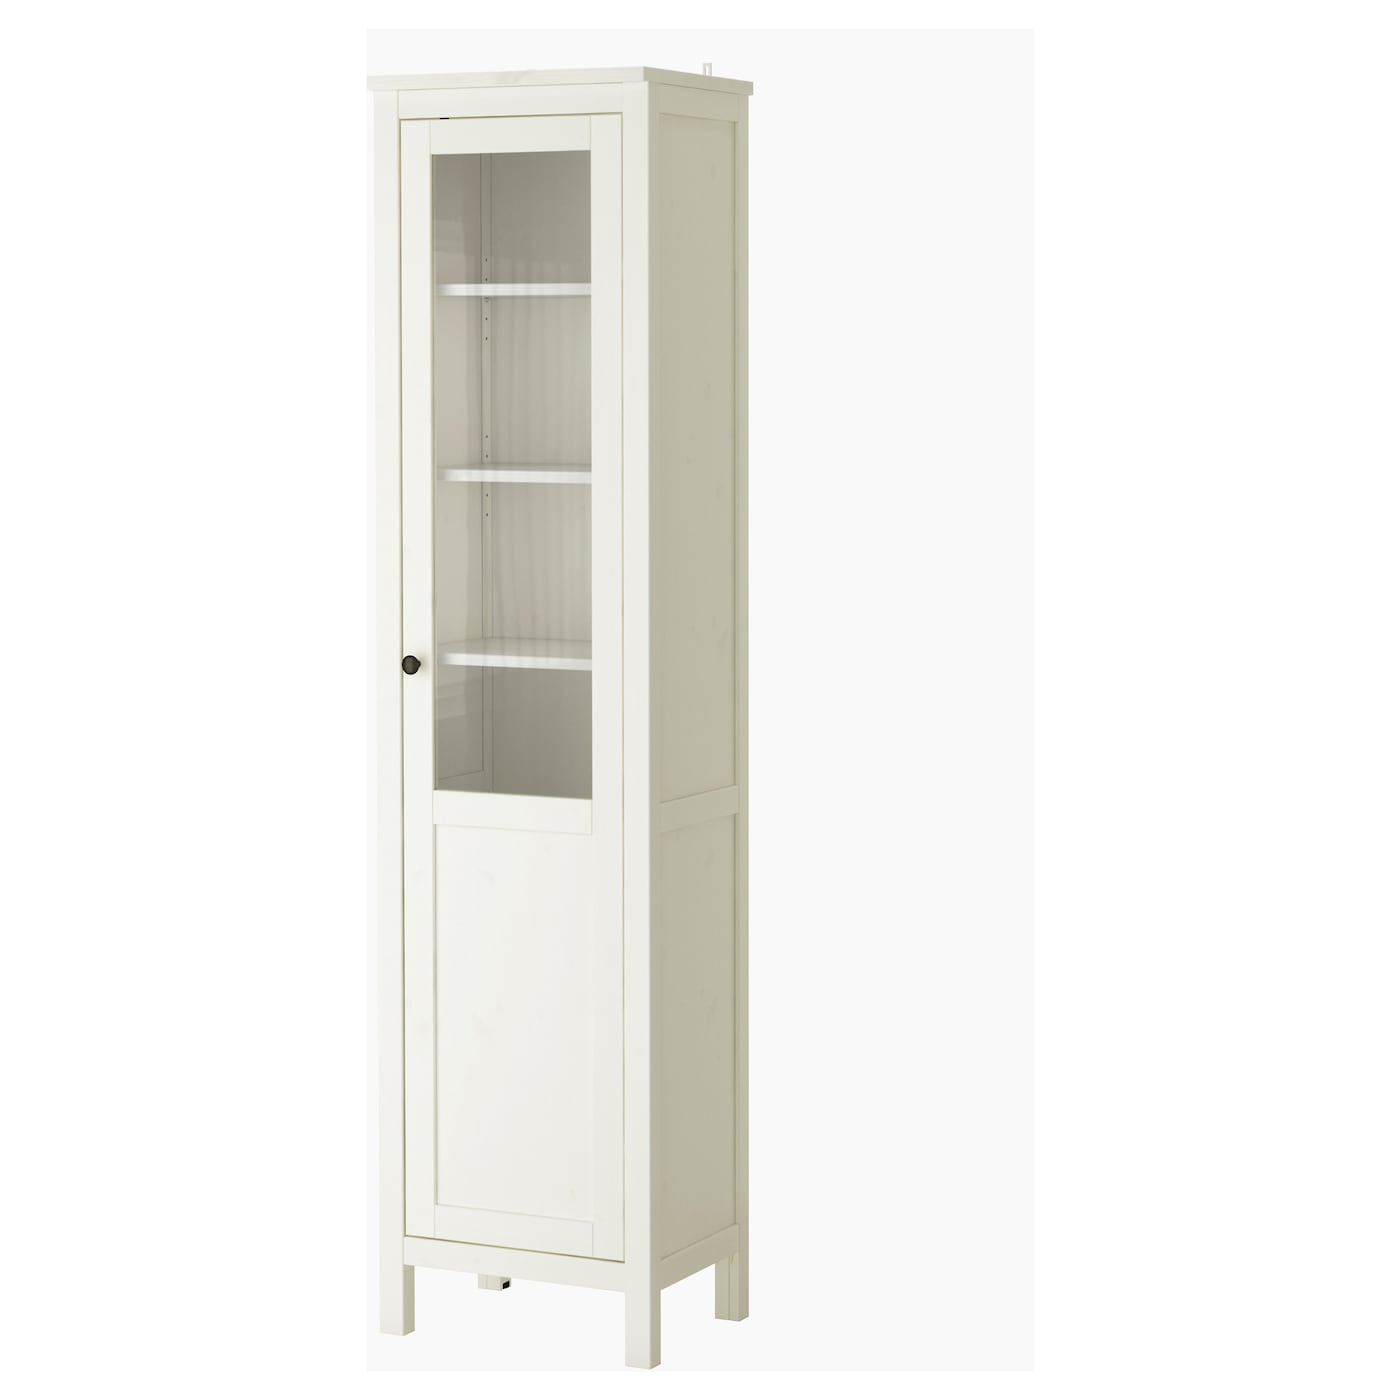 Ikea Hemnes Cabinet With Panel Glass Door Solid Wood Has A Natural Feel